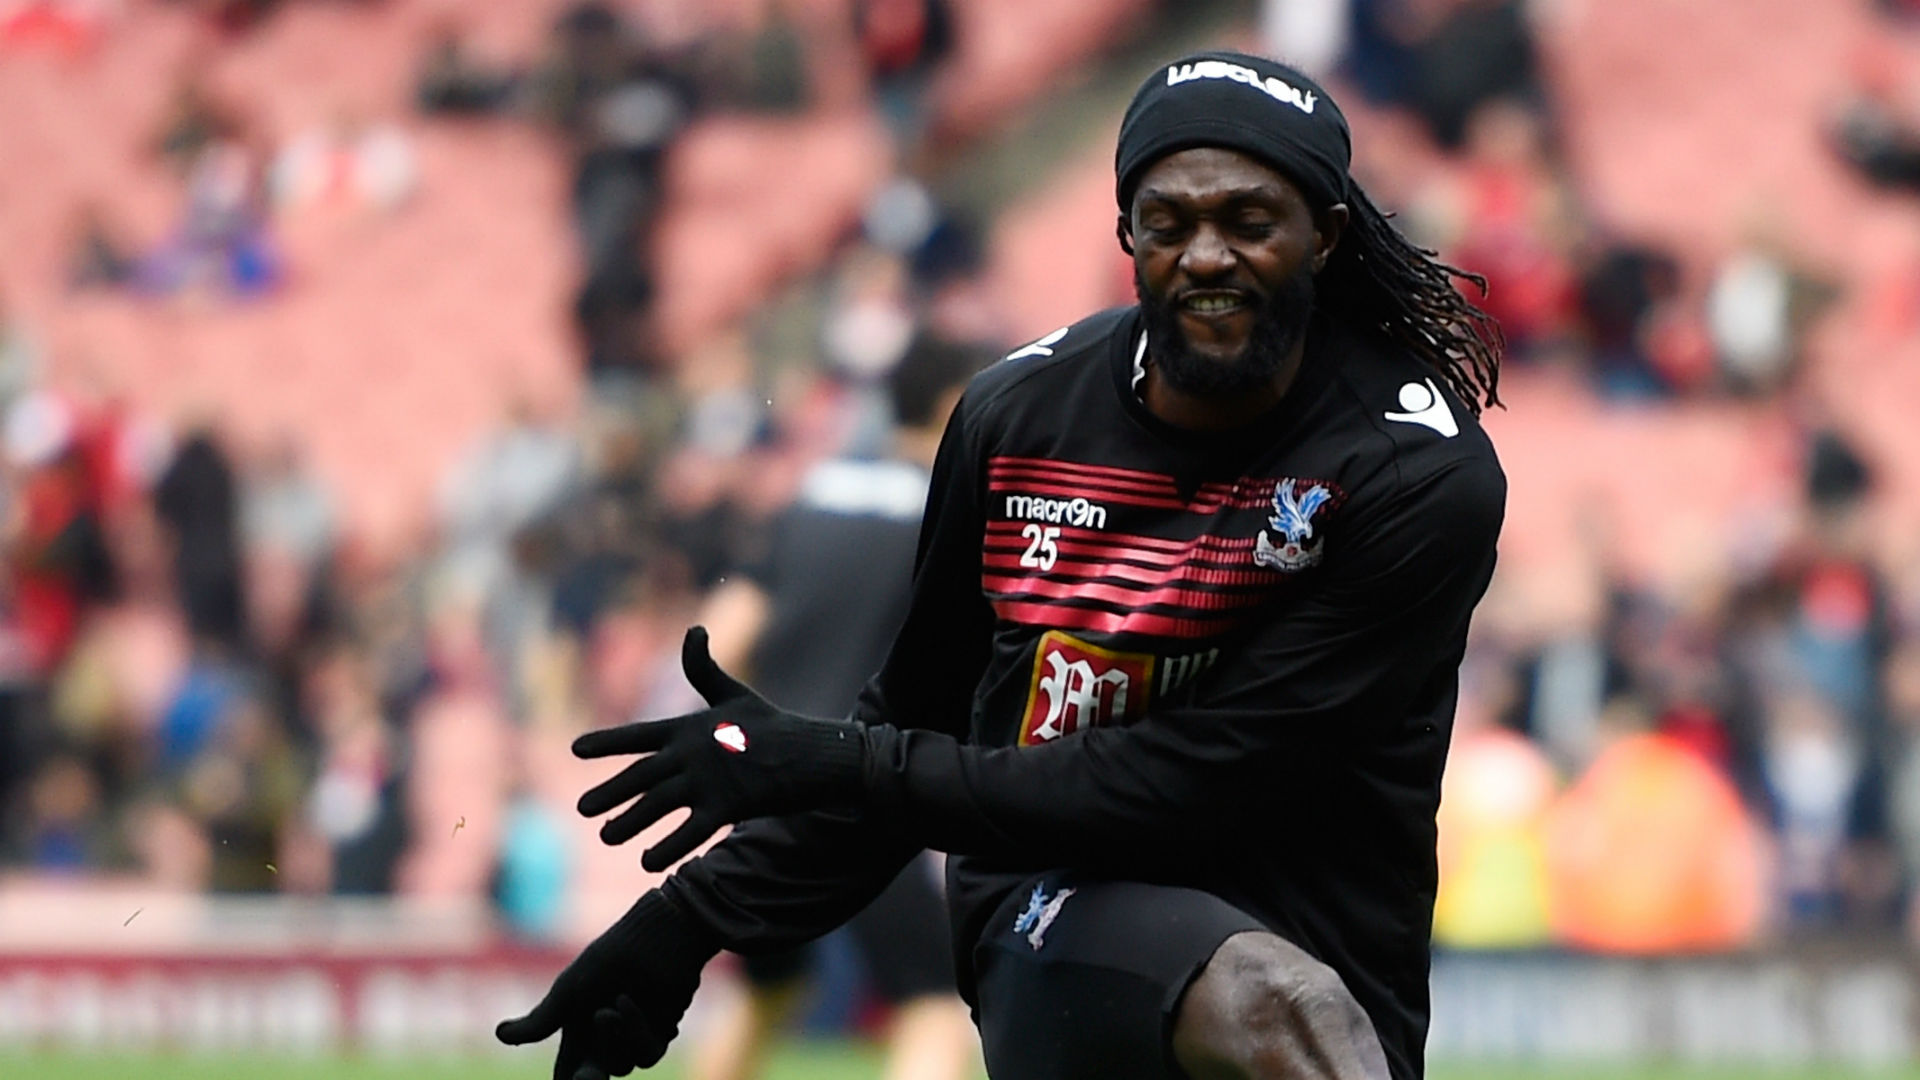 Emmanuel Adebayor the hat-trick hero in Turkey